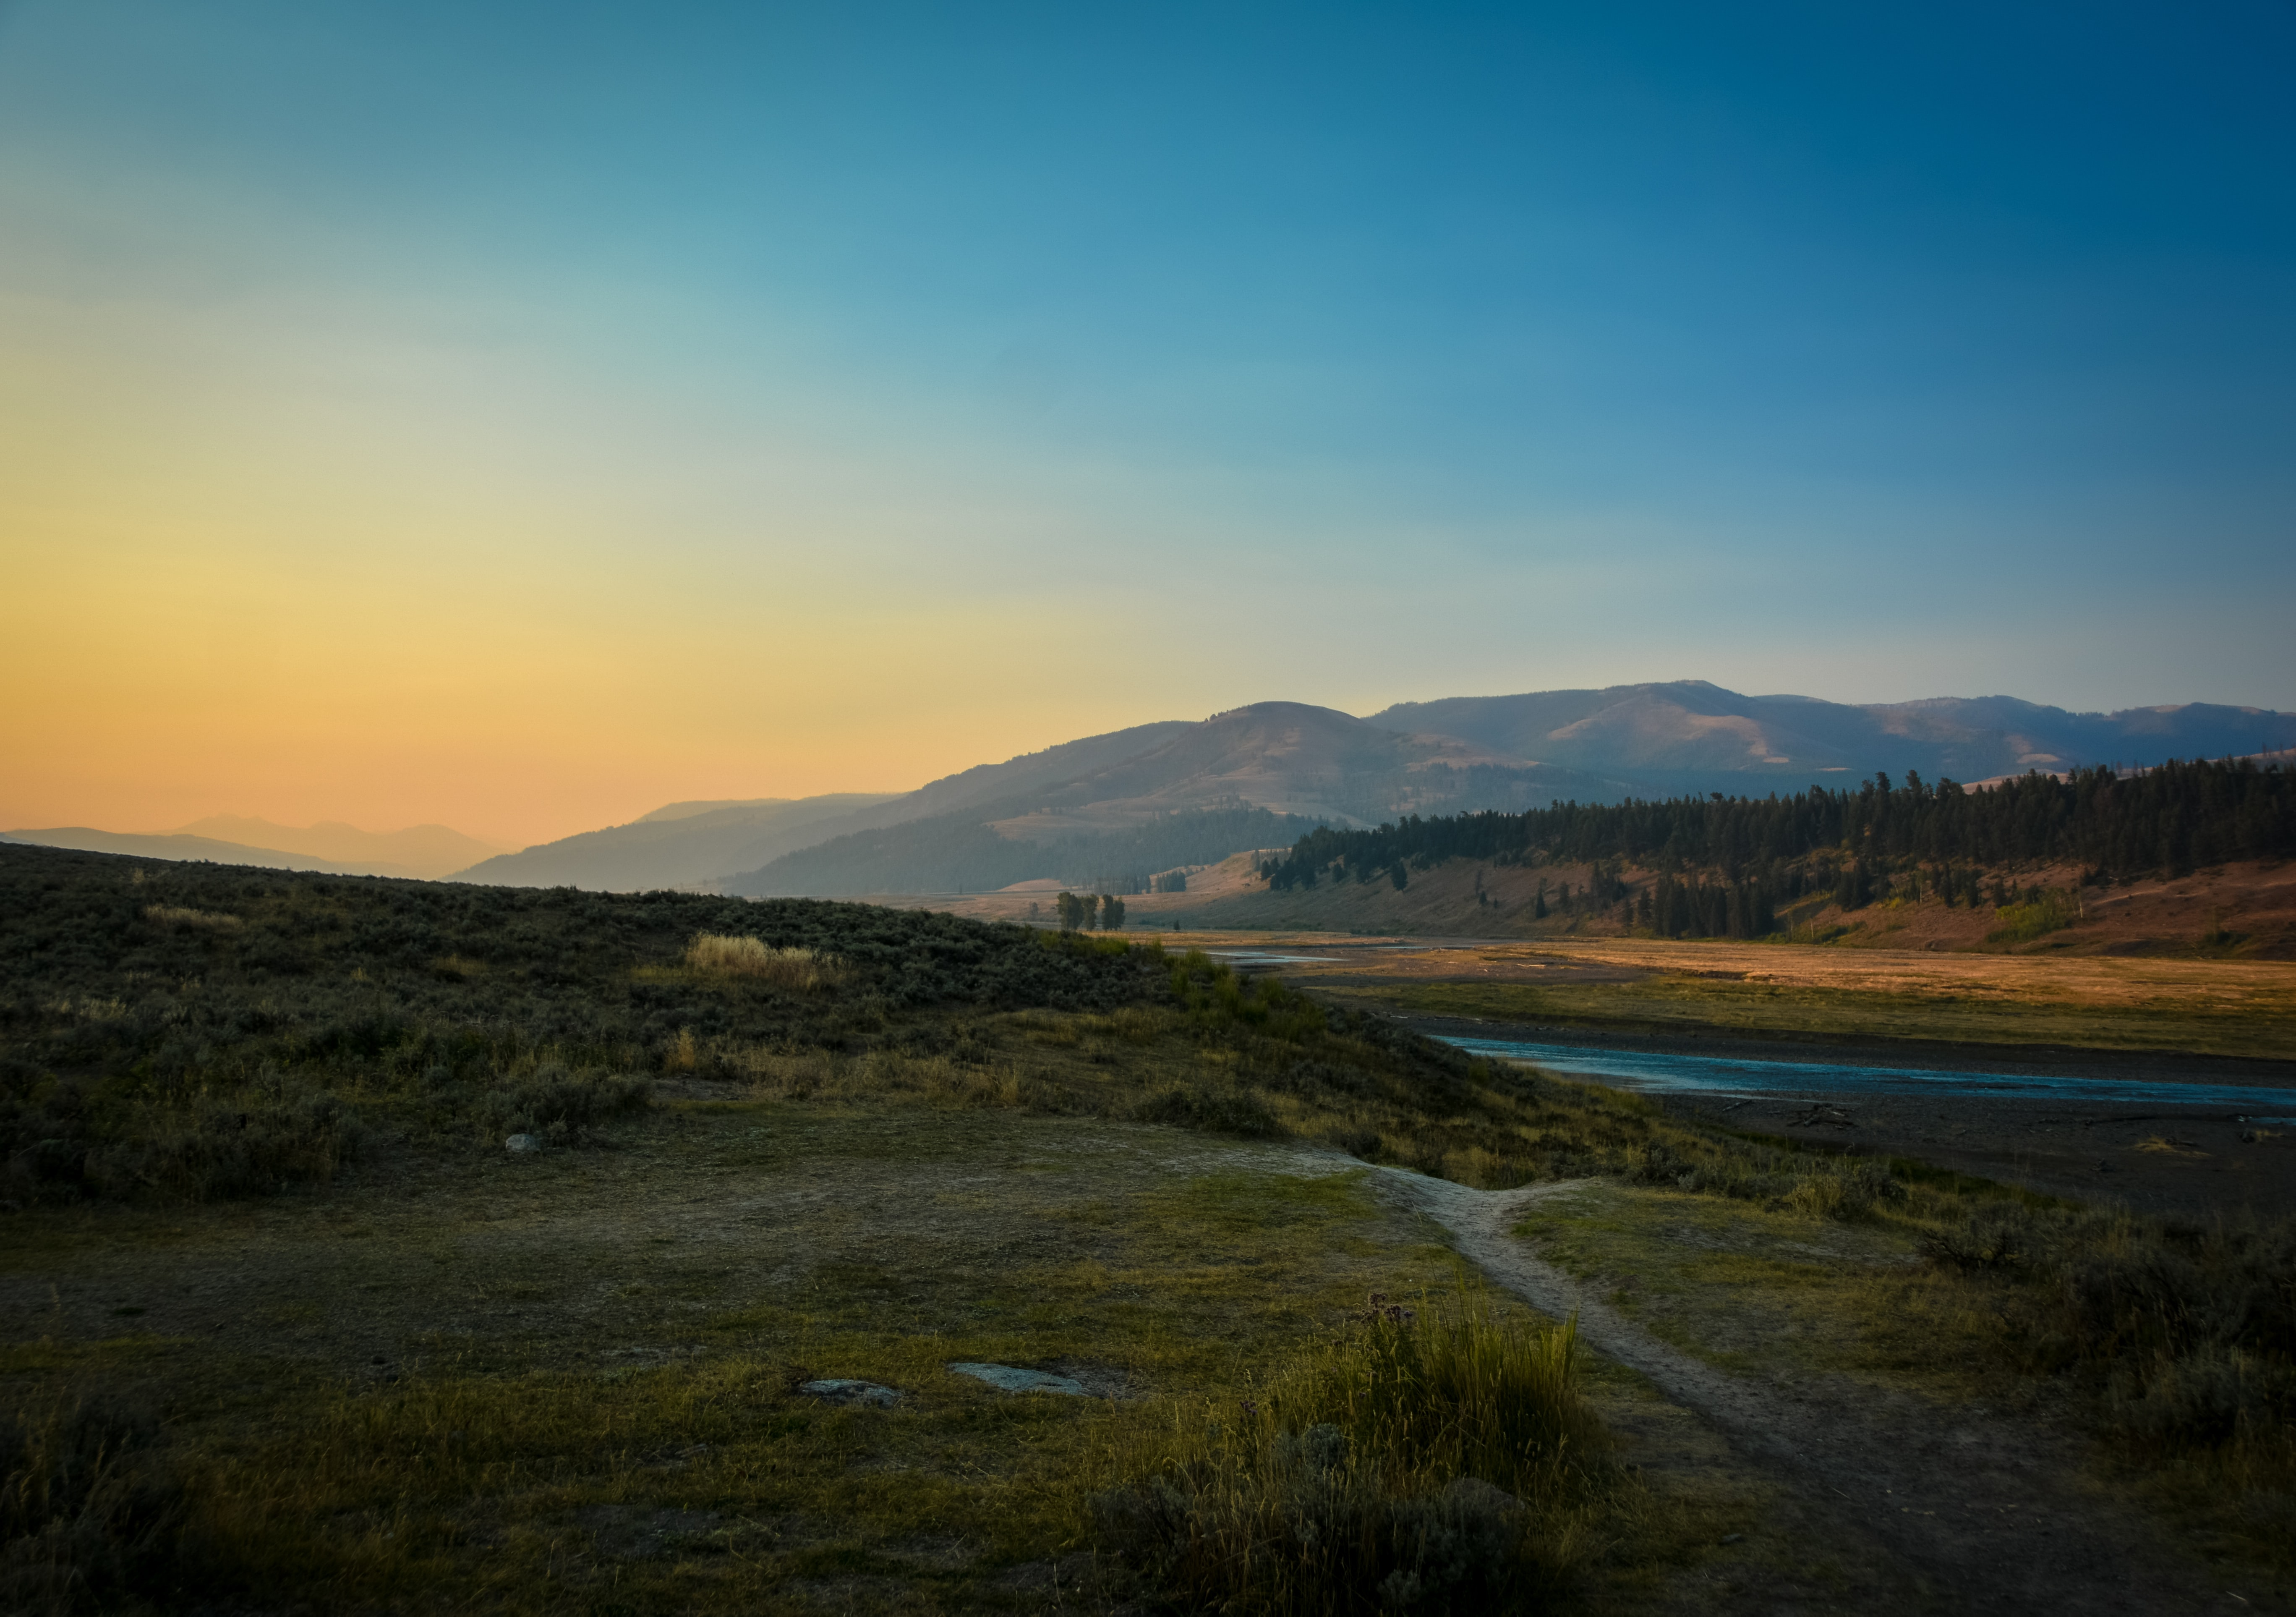 landscape photography of river and mountain